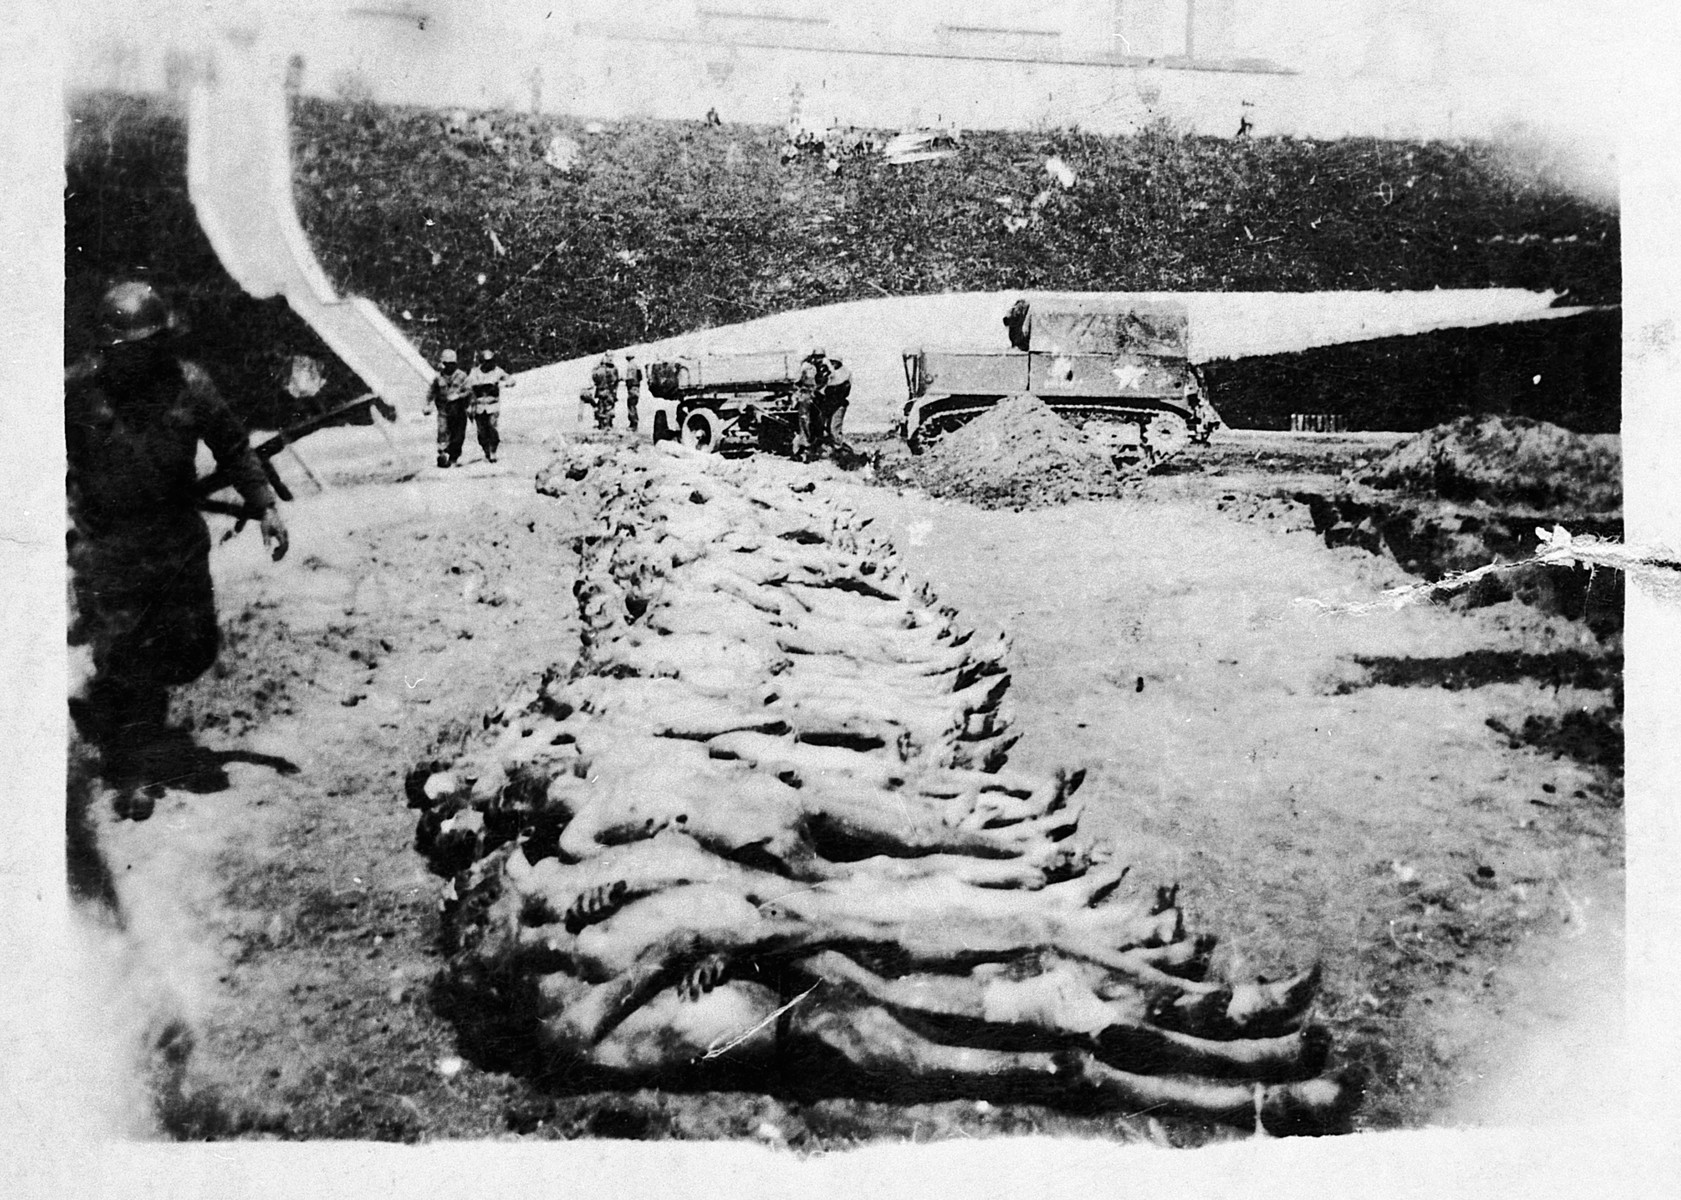 An American soldier walks past corpses laid out fin a sportsfield or burial in a mass grave.